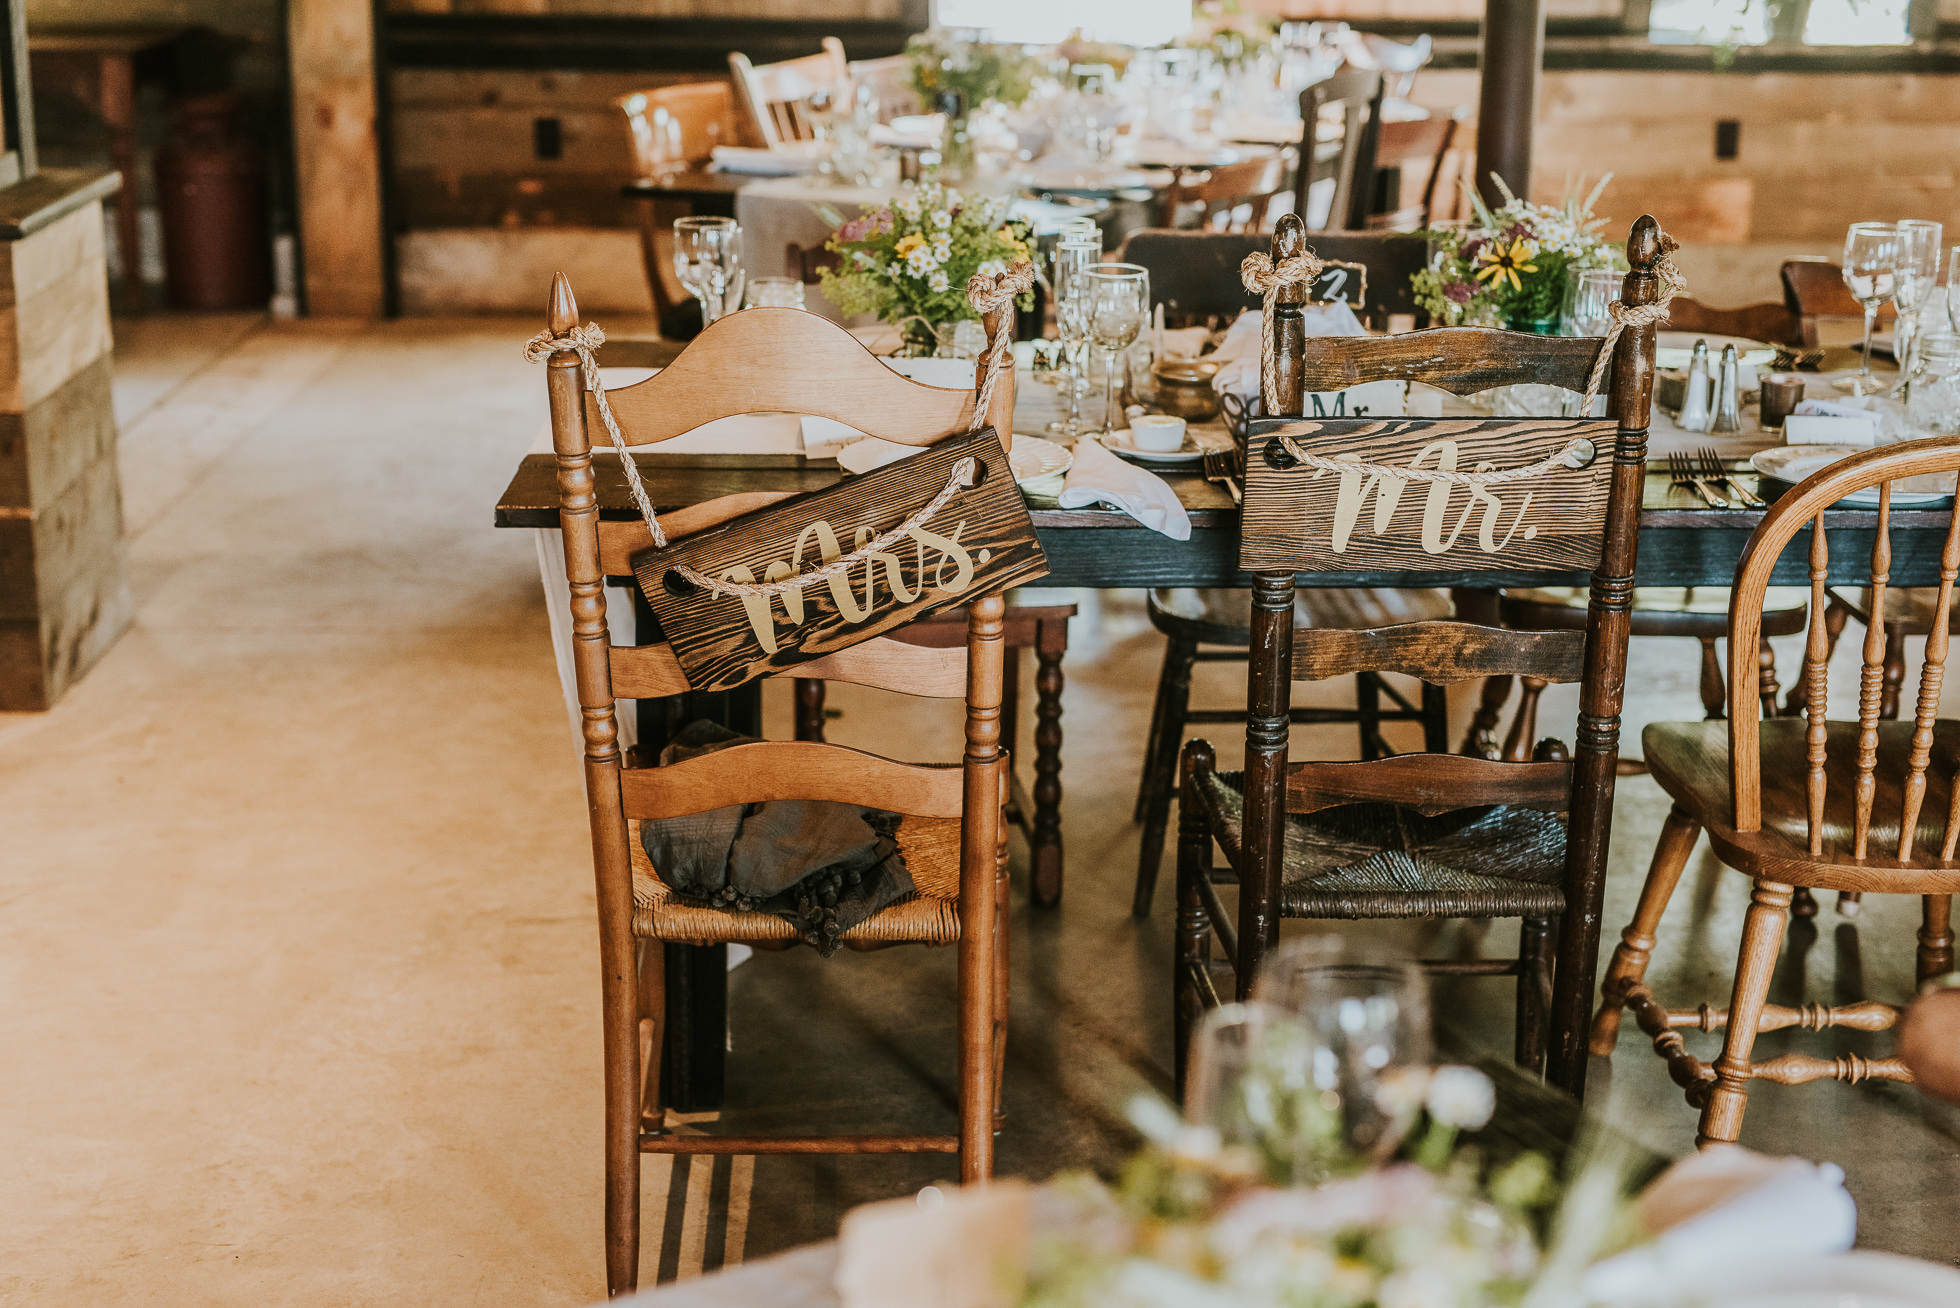 Mr & Mrs rustic wedding signs photographed by Traverse the Tides